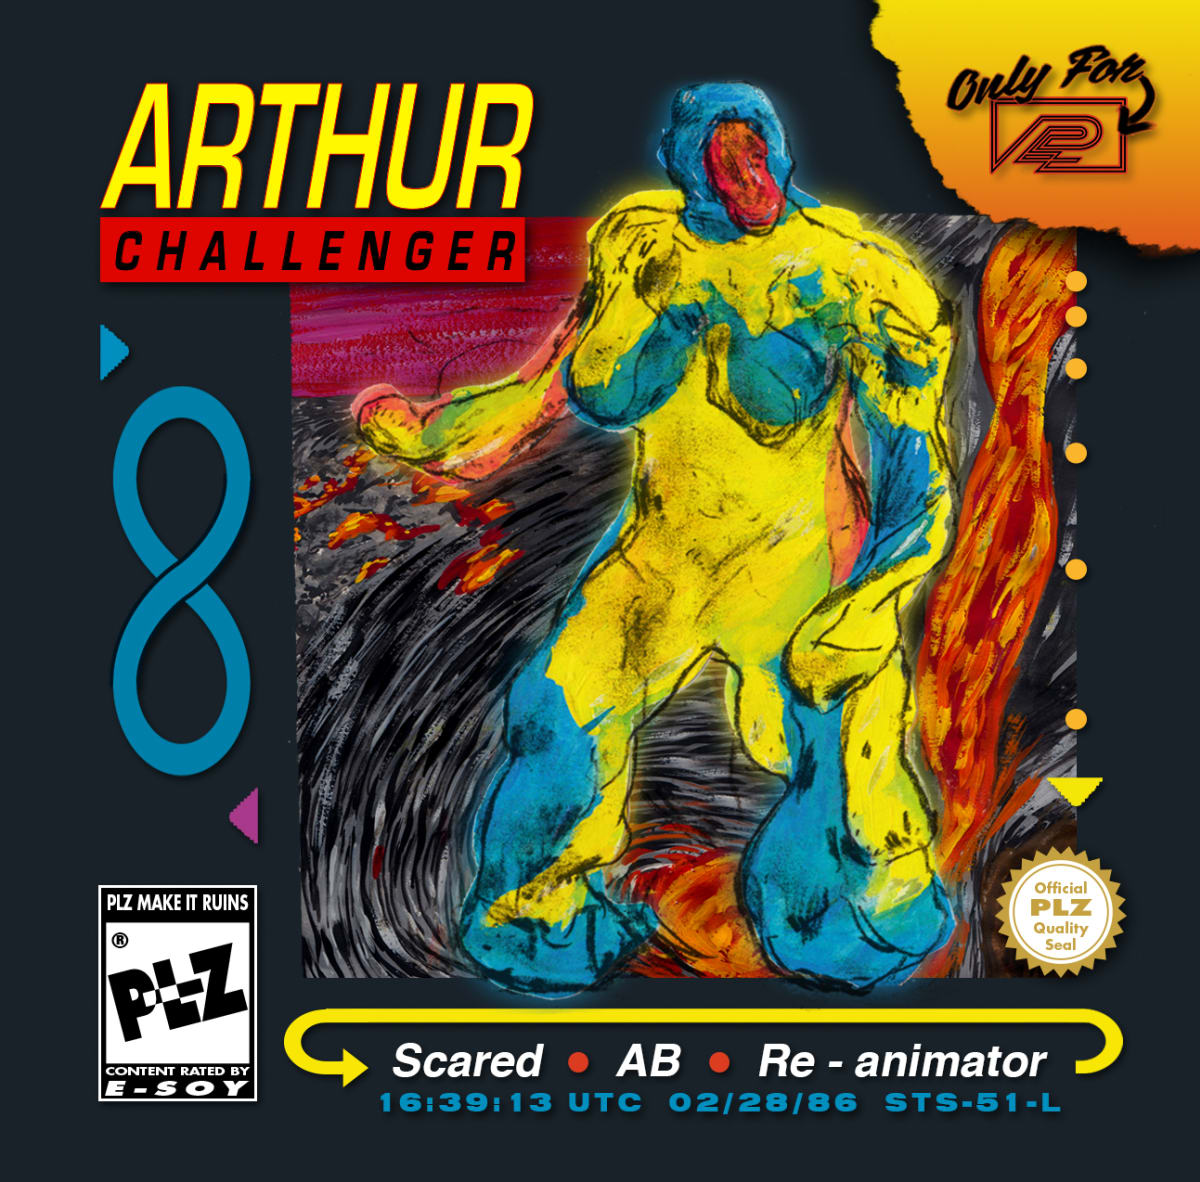 The Music Ep Arthur Takes Pop Music In Unexpected Directions On The Challenger